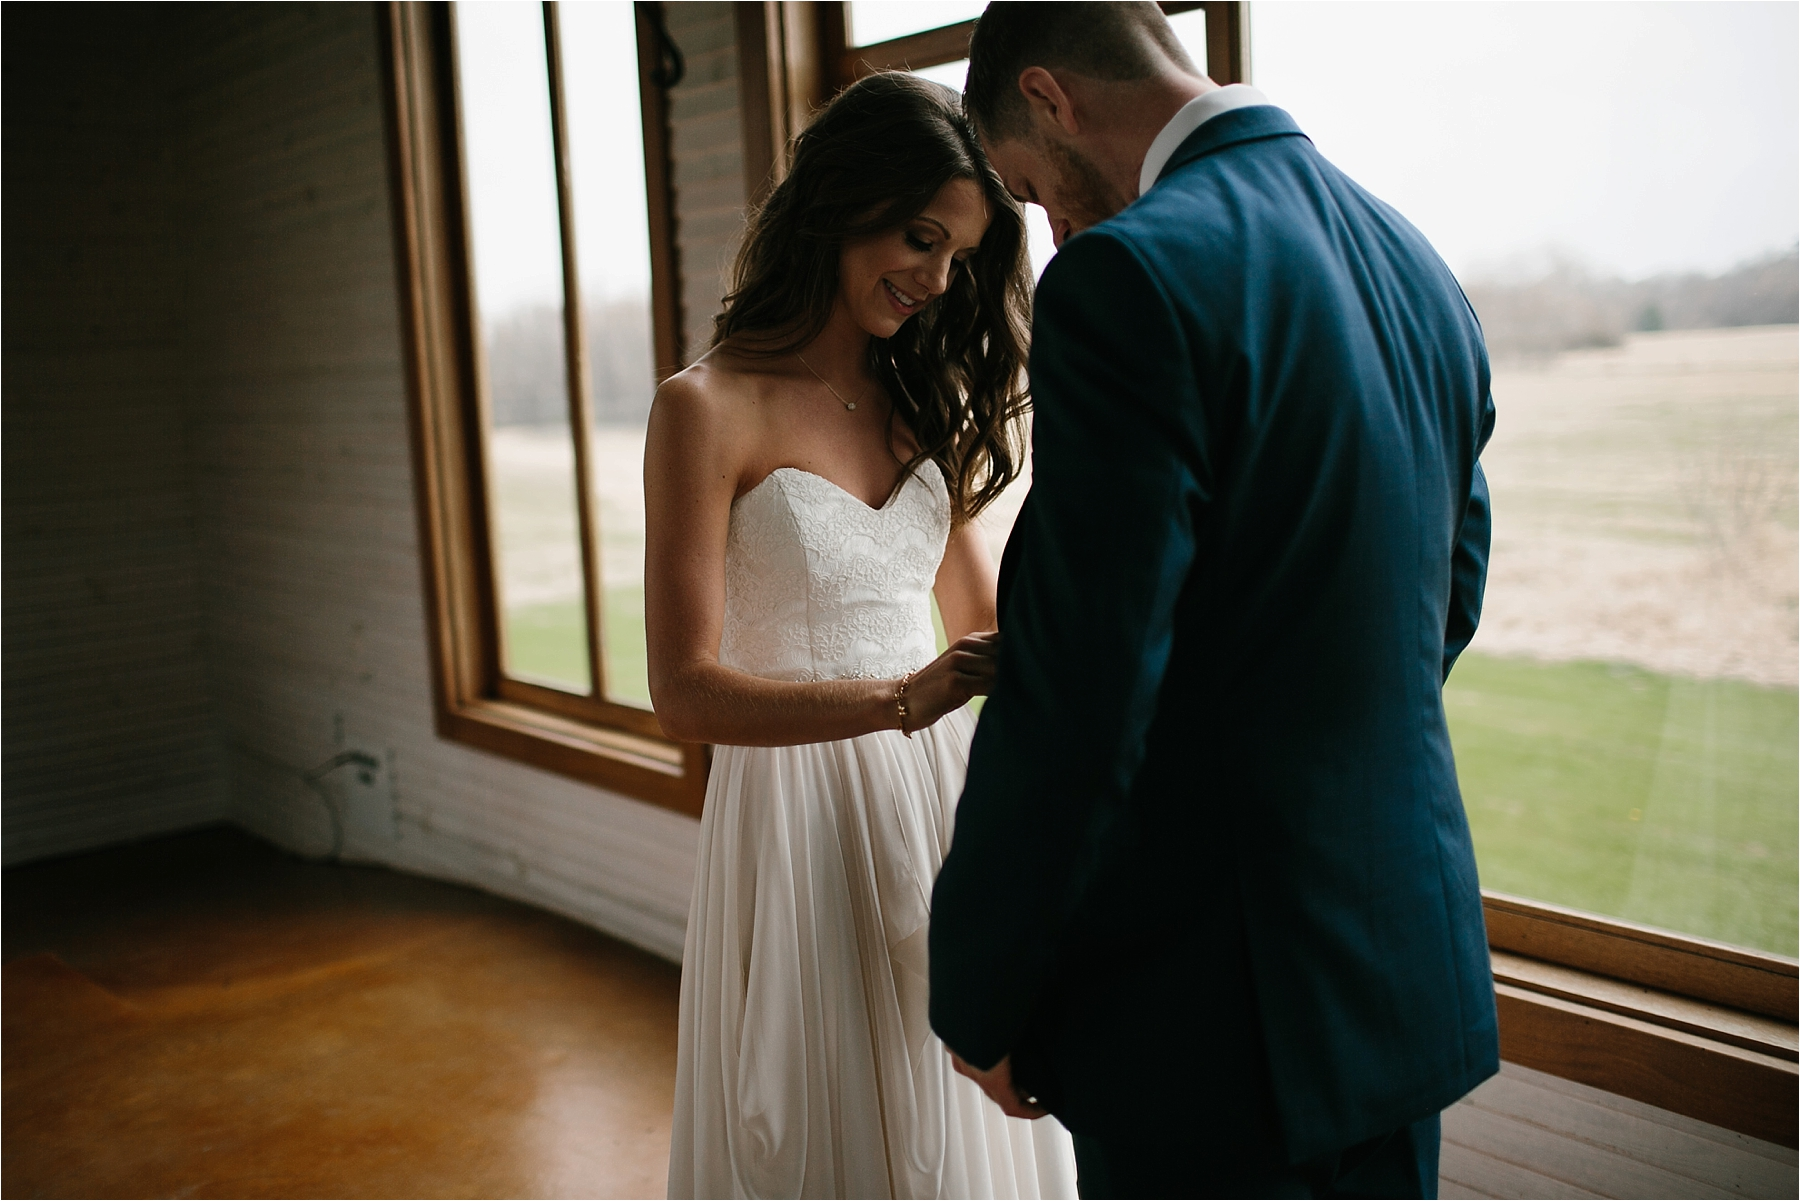 Lauren + Matt __ an intimate, emotional, blush pink, navy blue, and greenery toned wedding accents at the Brooks at Weatherford by North Texas Wedding Photographer Rachel Meagan Photography030